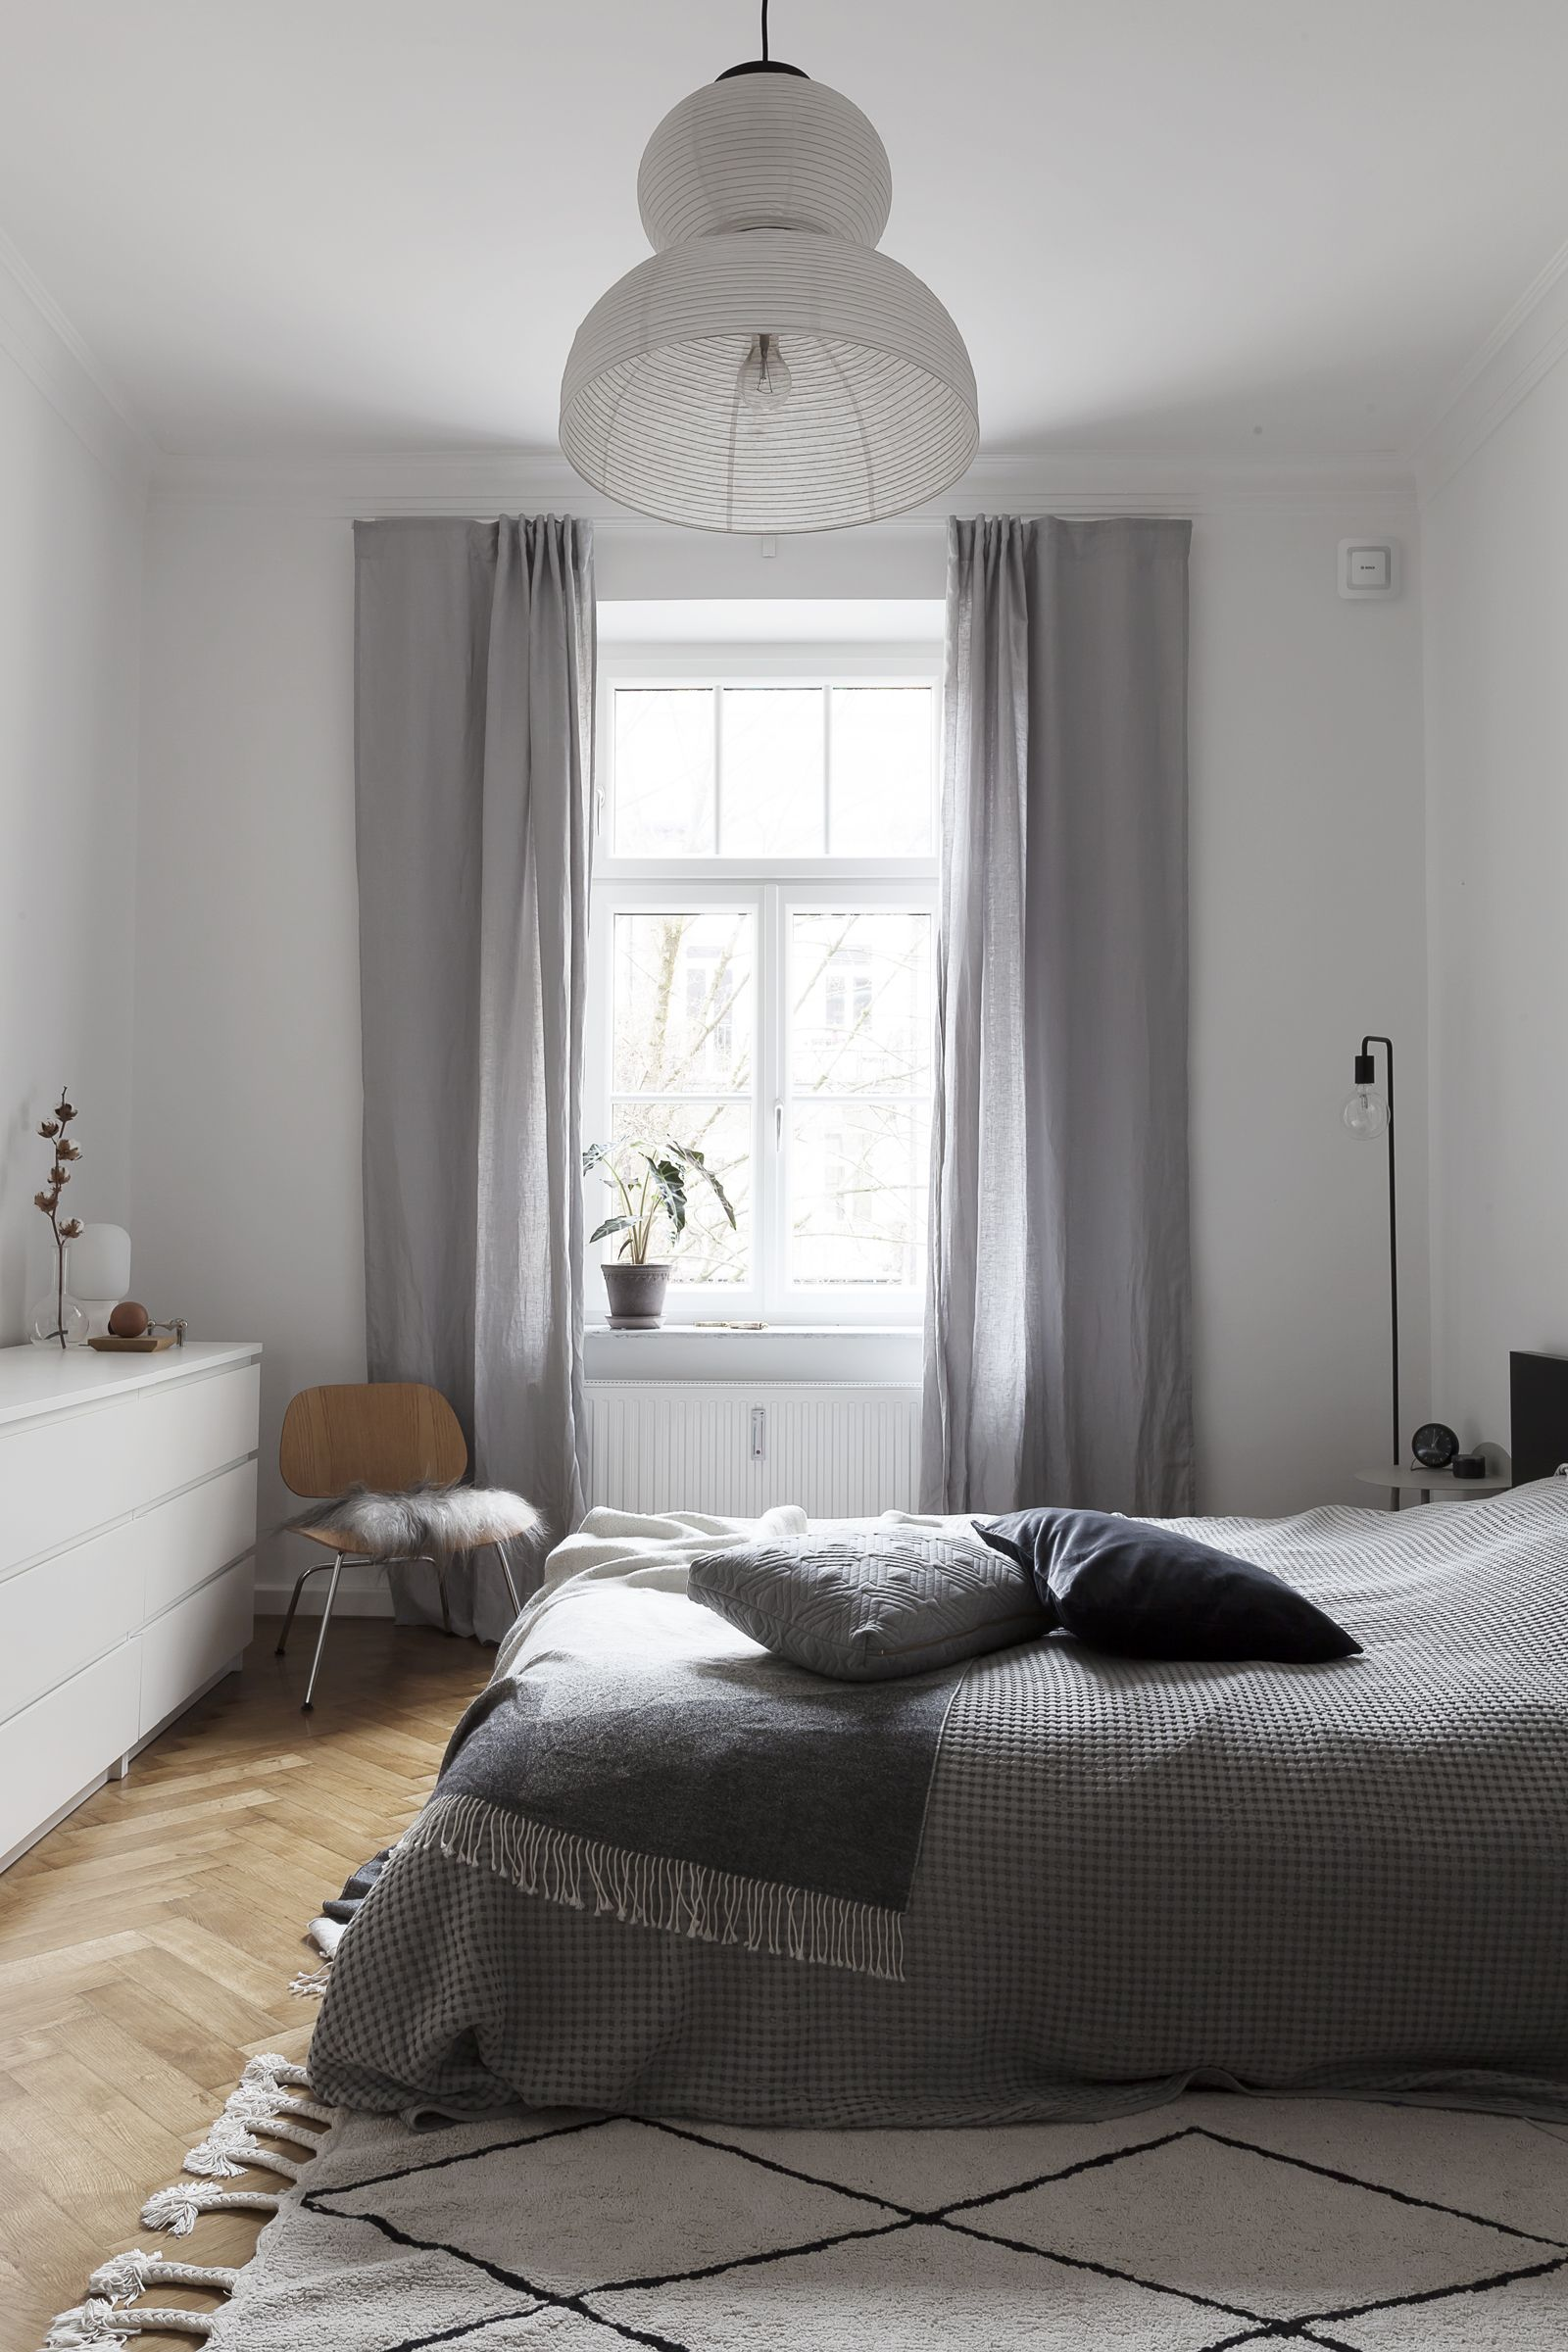 Comfort With Bosch Smart Home Via Coco Lapine Design Blog Wg Zimmer Schlafzimmer Design Schlafzimmer Inspiration